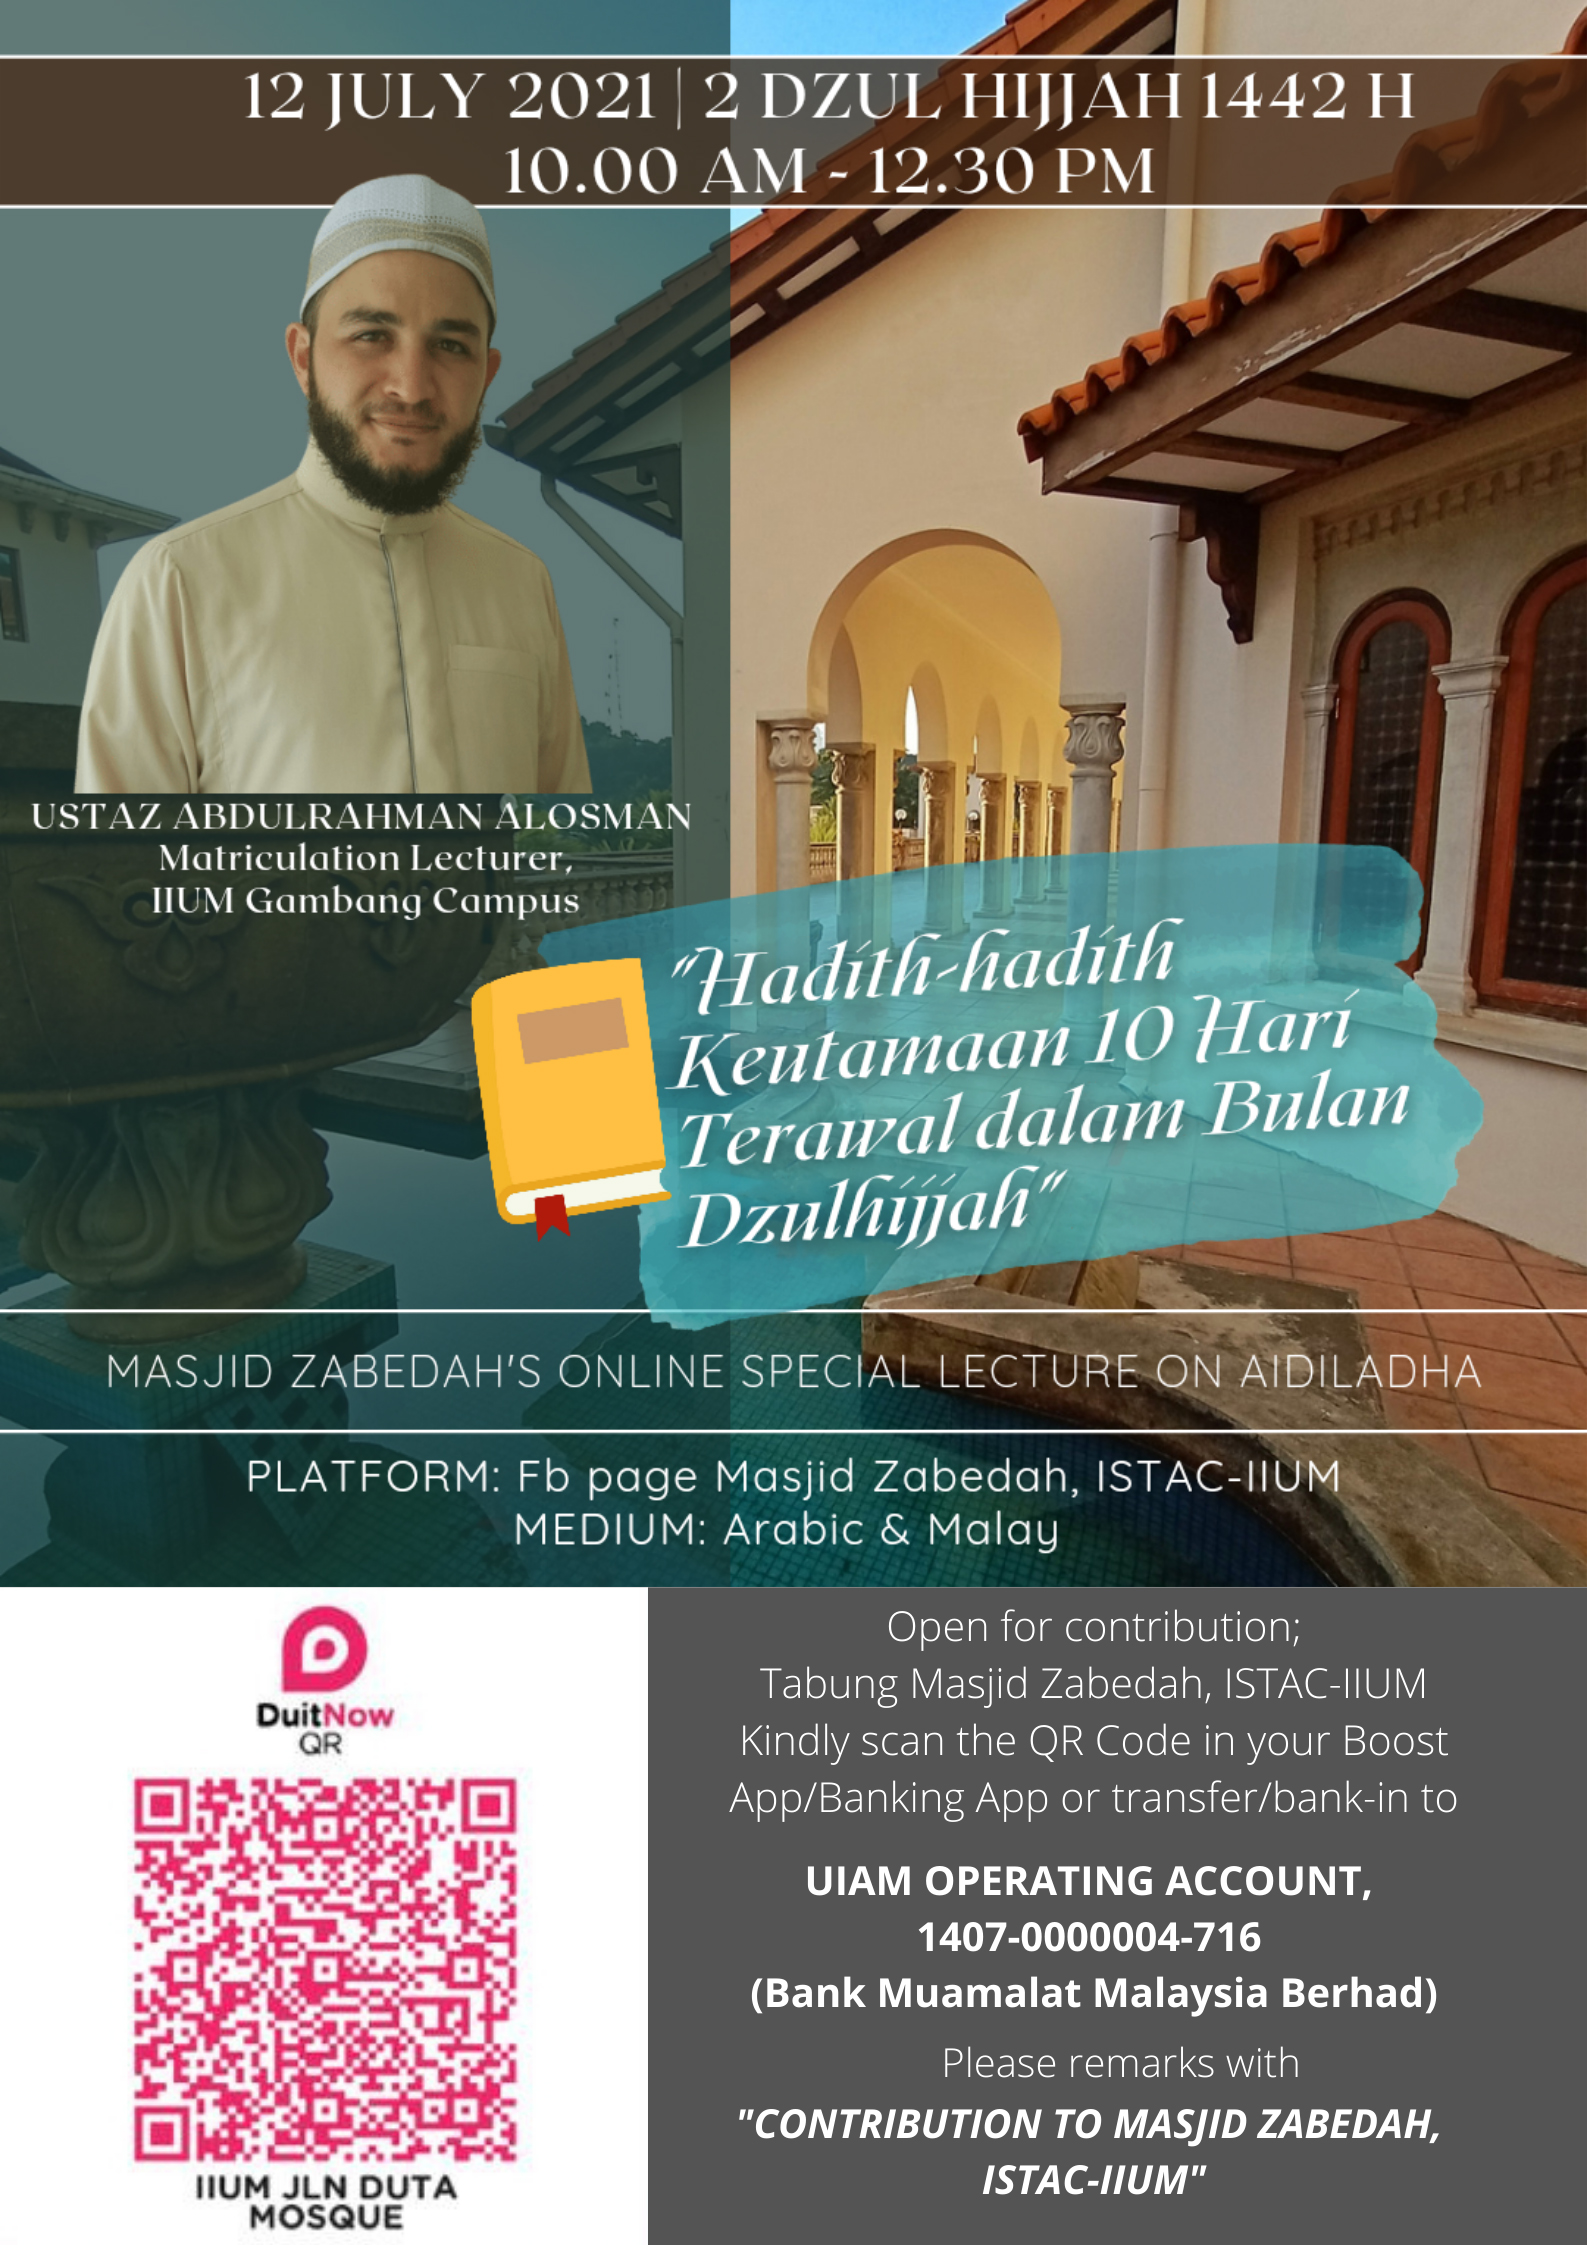 ONLINE SPECIAL LECTURE ON 'AID AL-ADHA